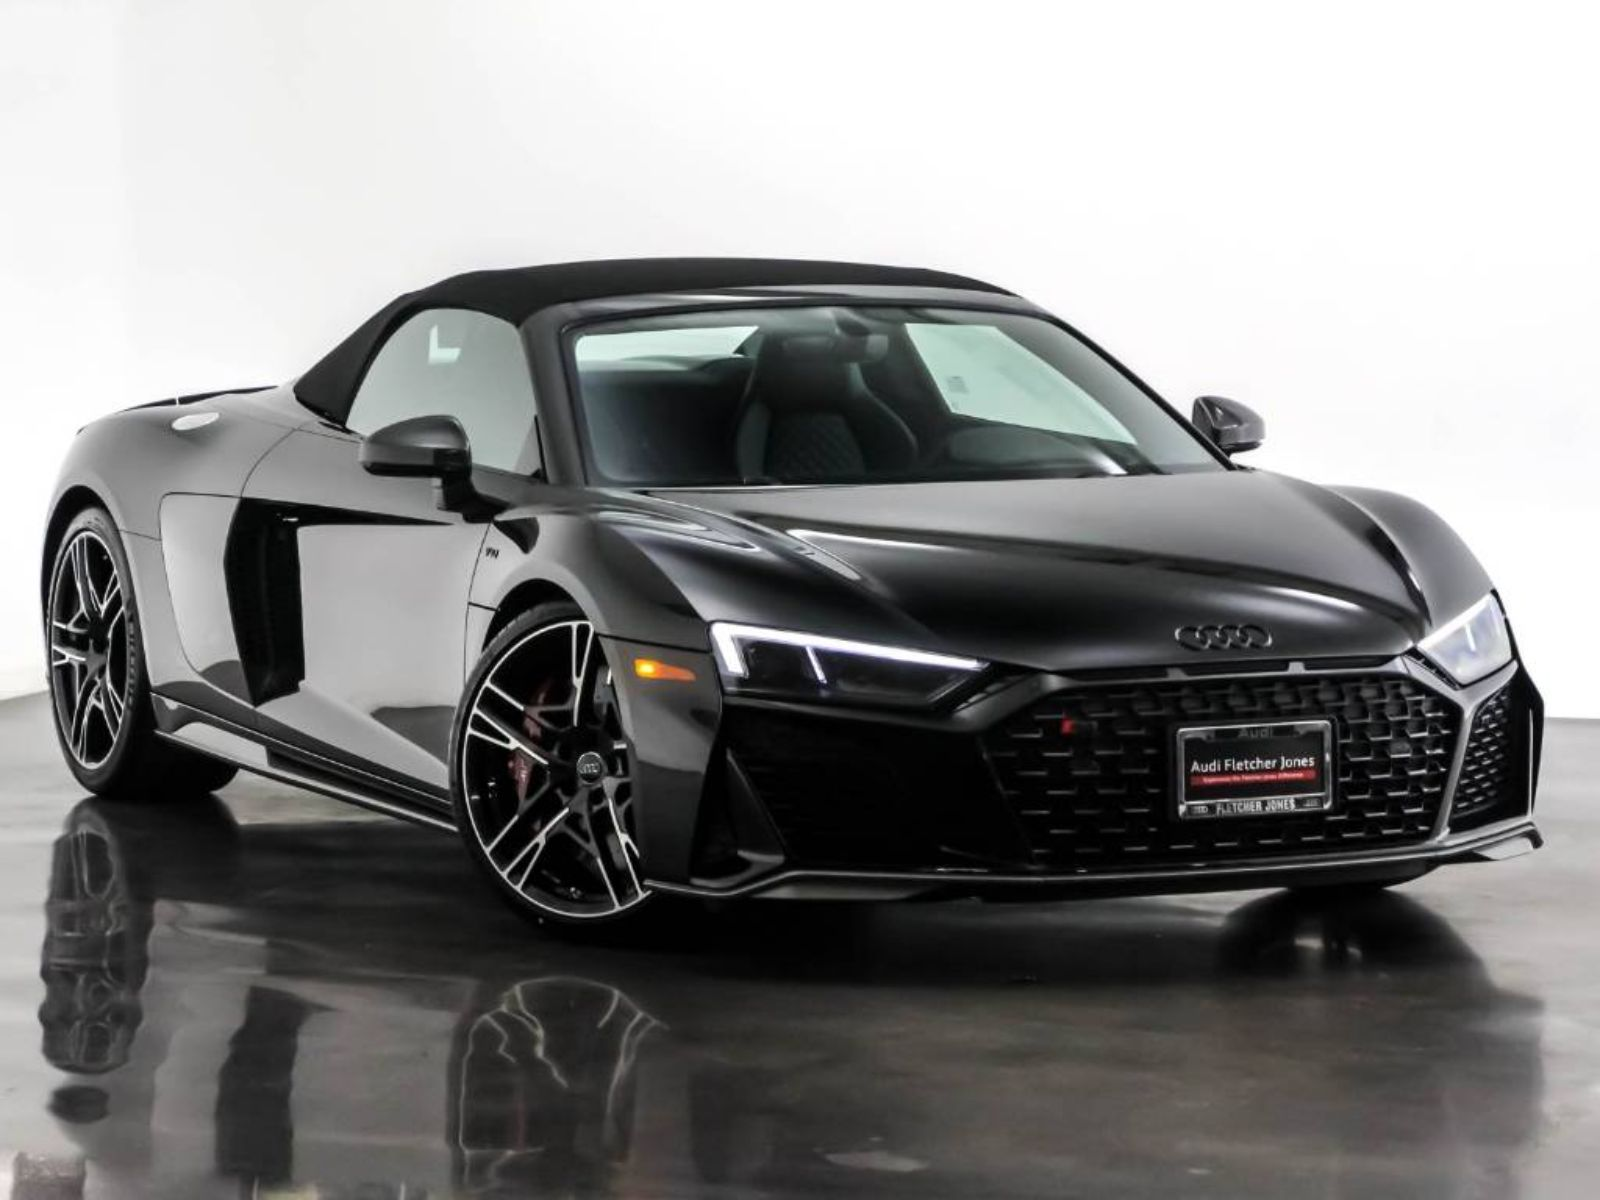 New 2020 Audi R8 Spyder V10 performance